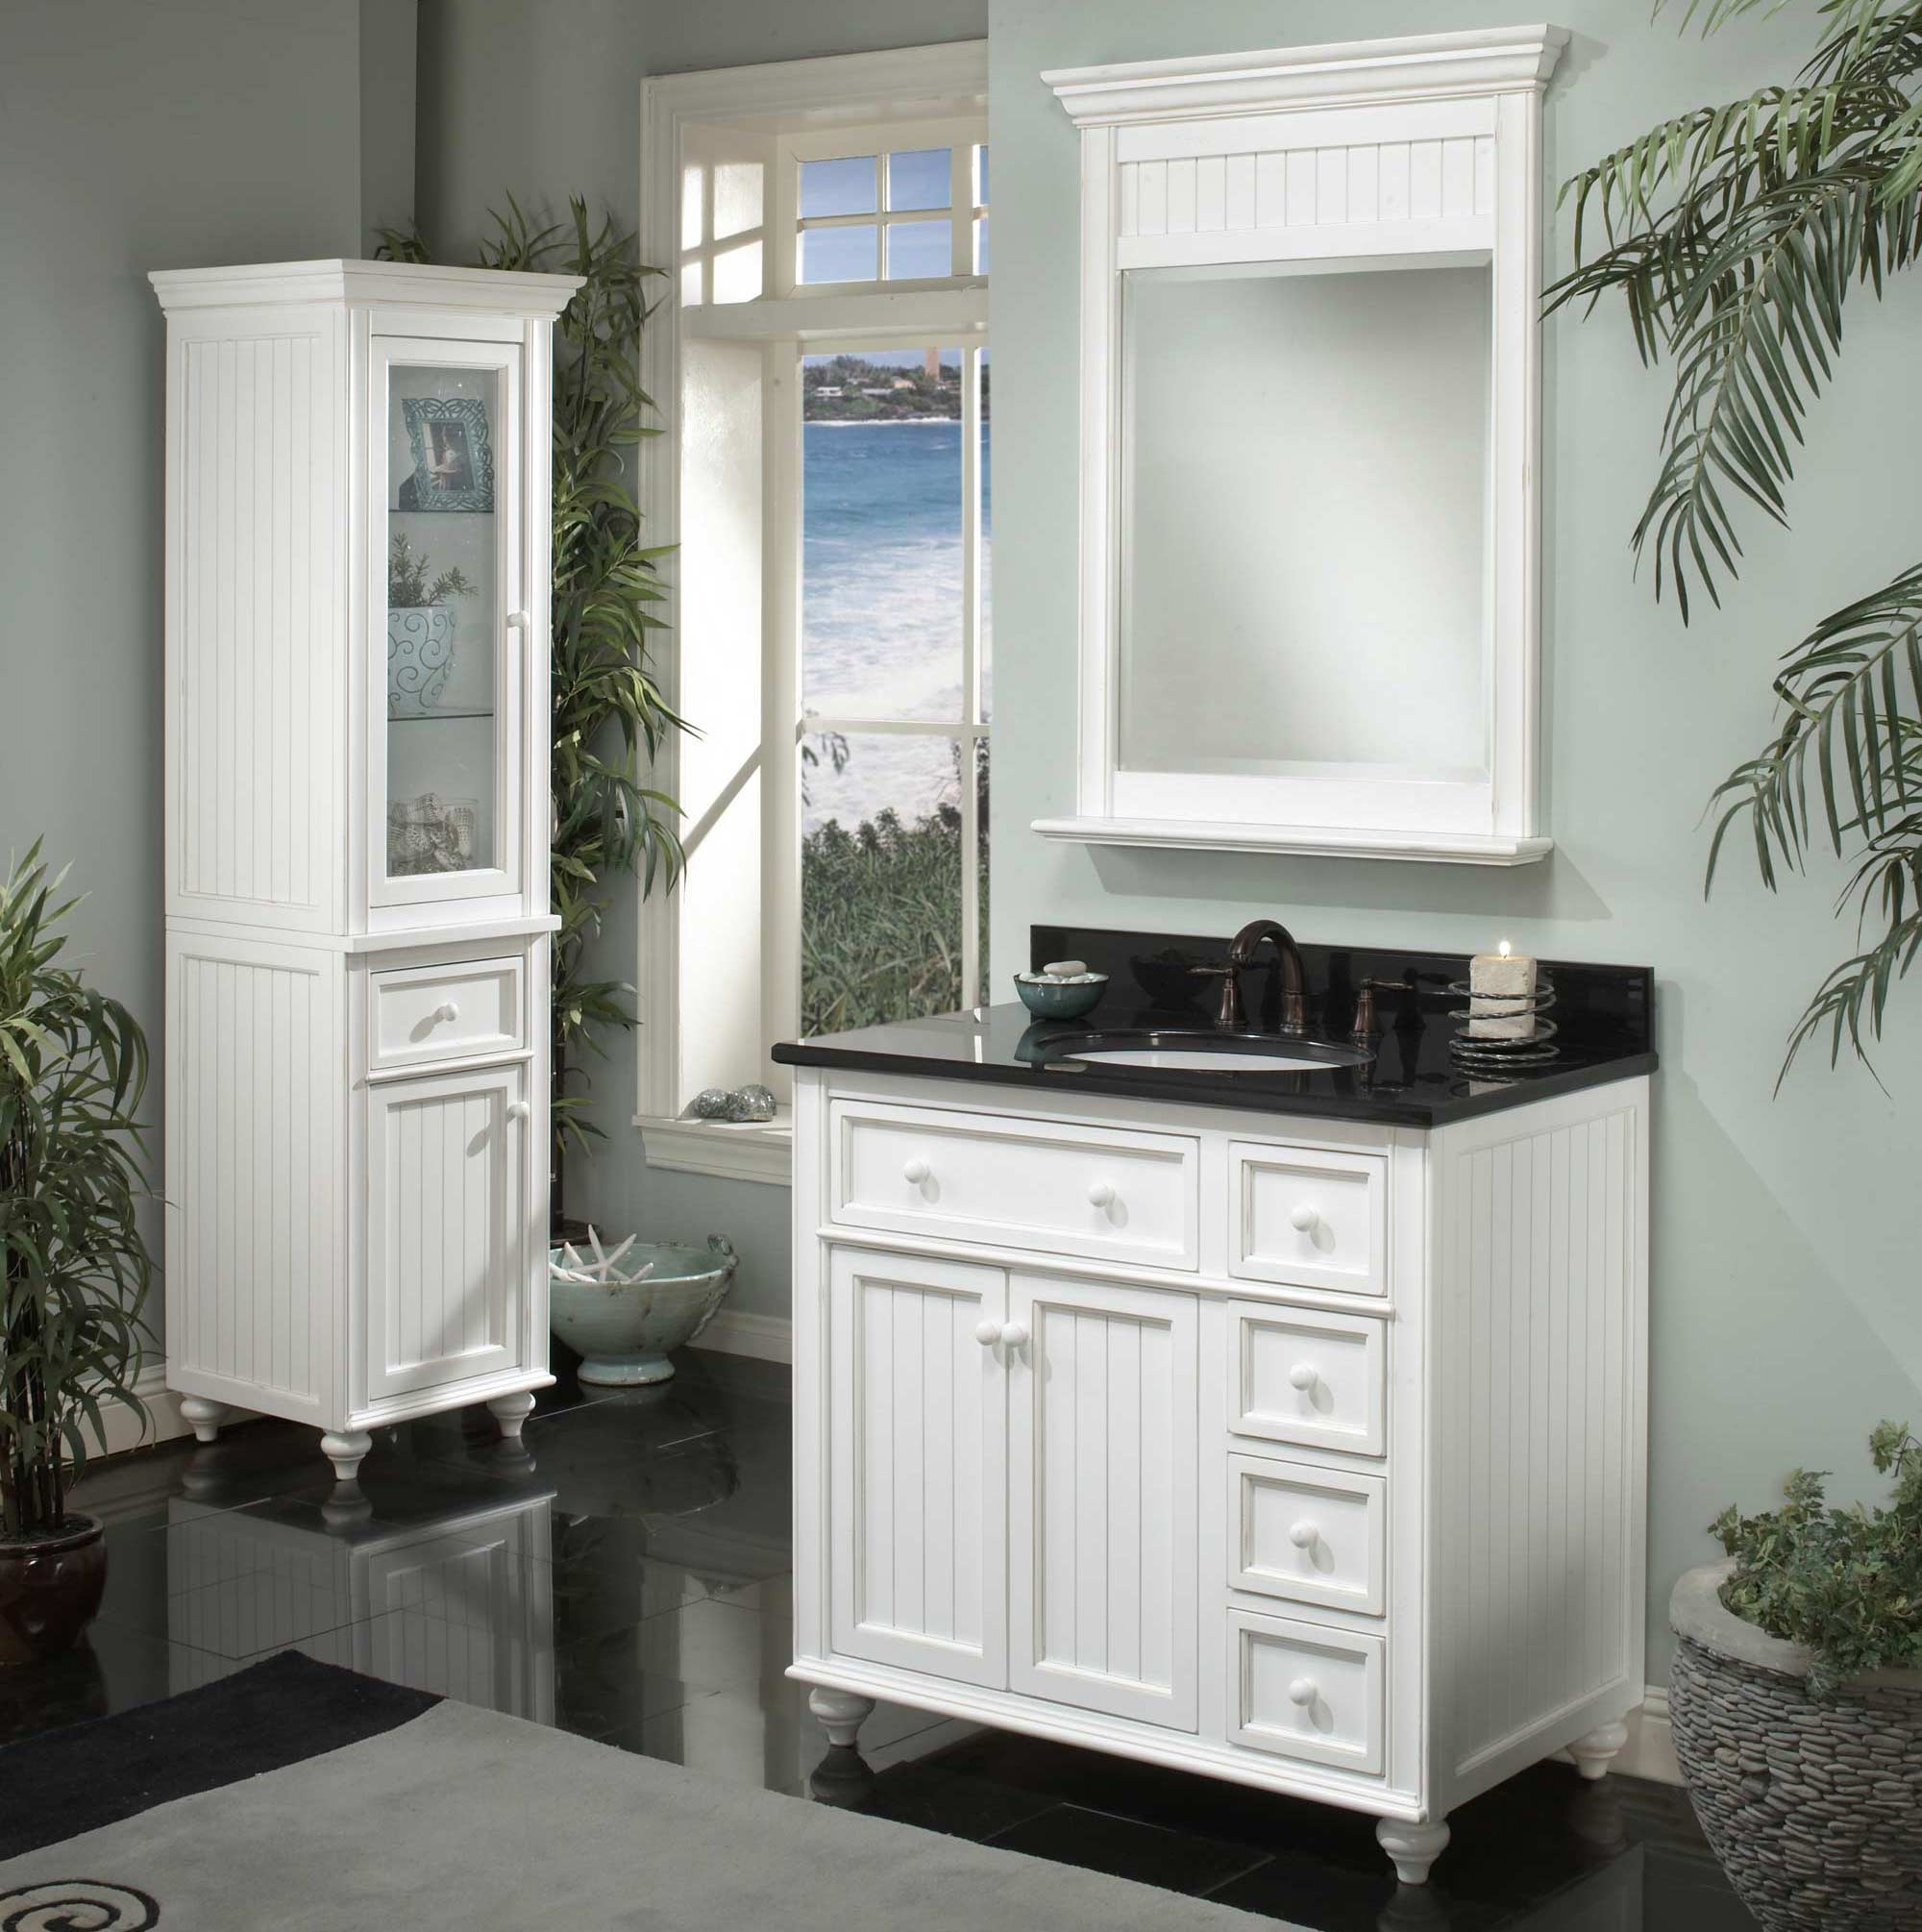 cr3621d sagehill designs cr3621d white bayside cottage retreat 36 inch bathroom vanity cabinet - White Vanities For Bathroom